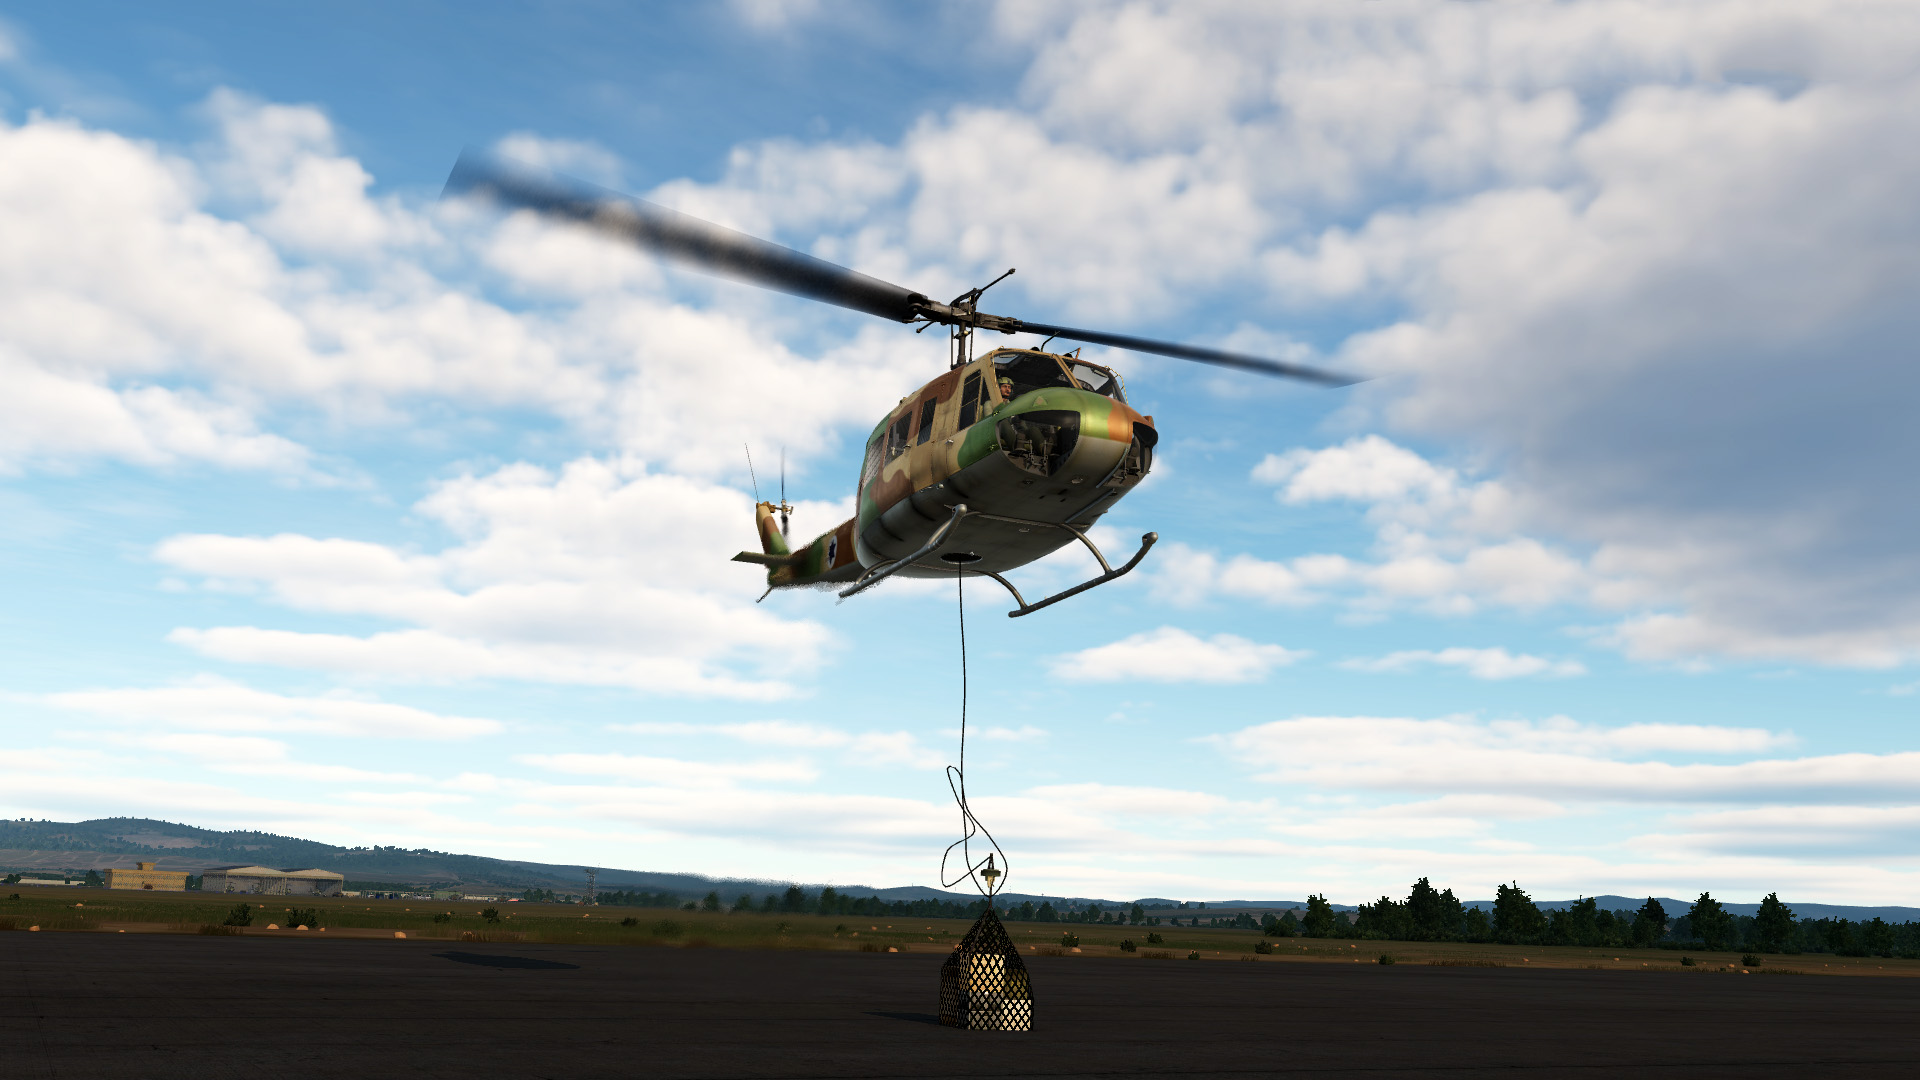 Sling load training for the Huey